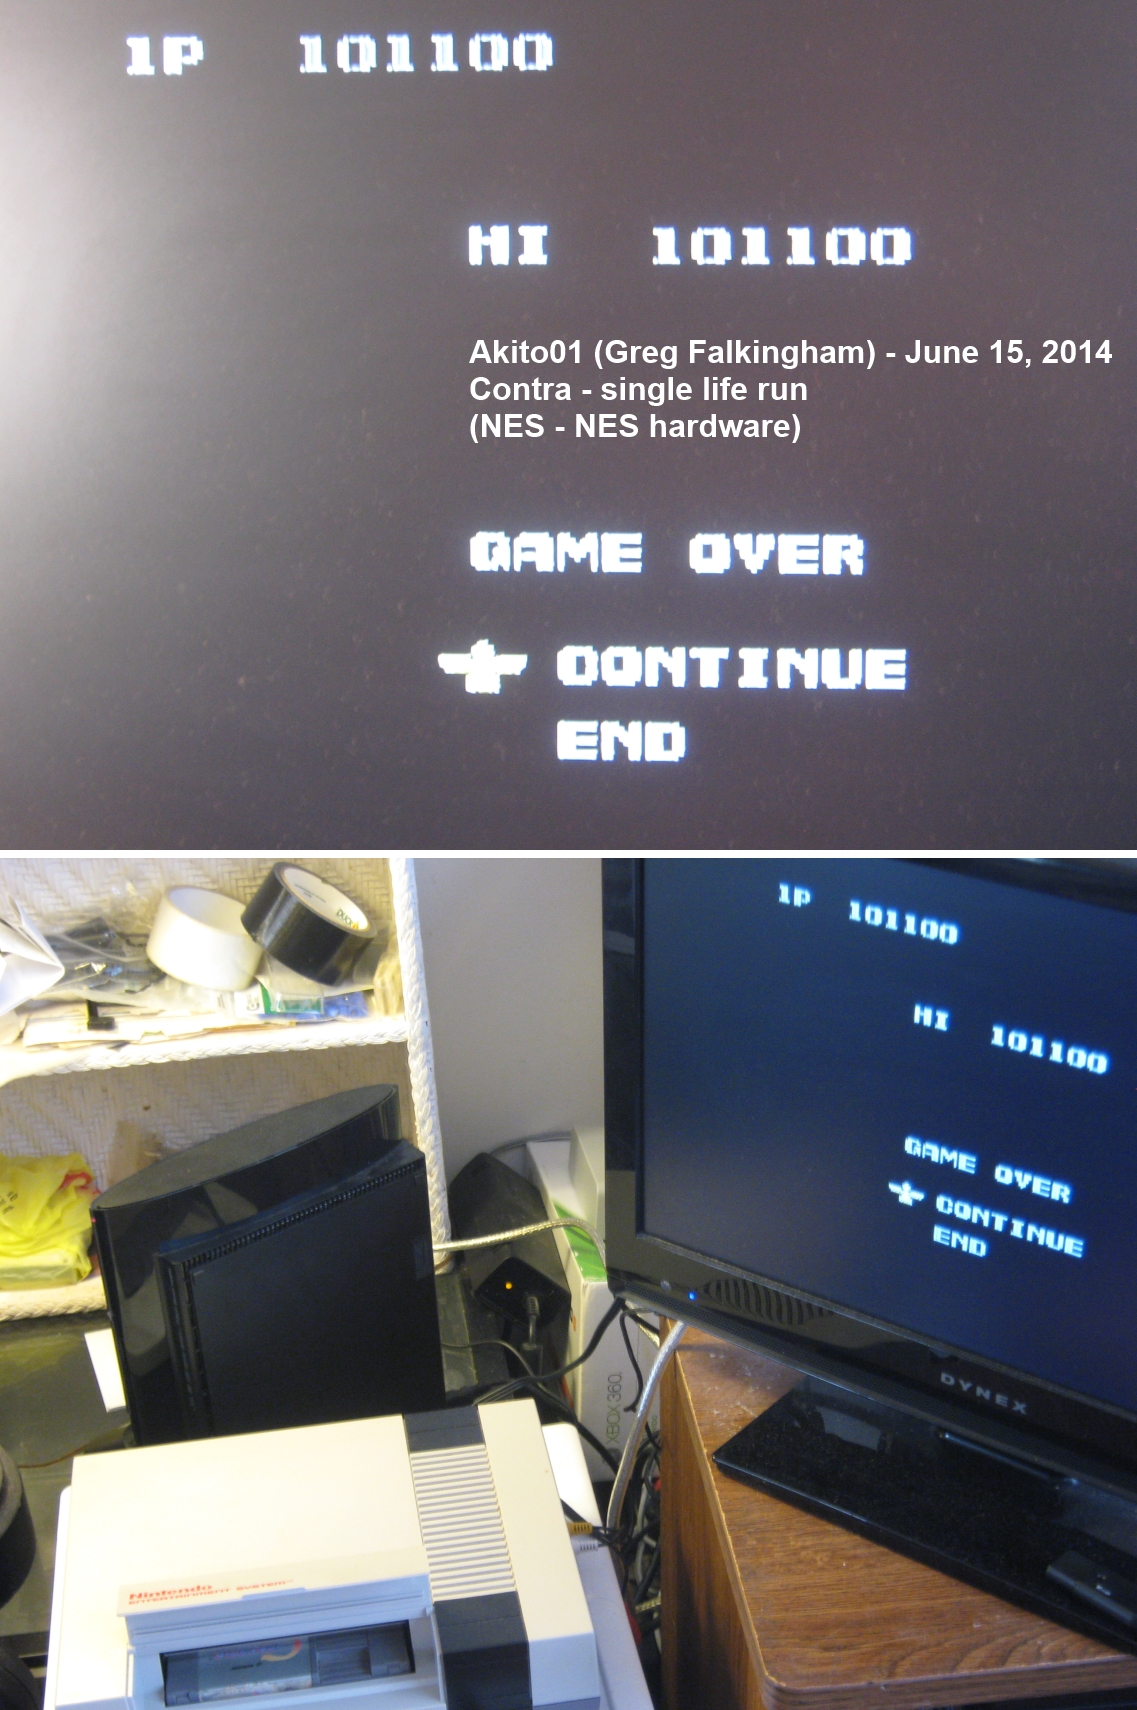 Akito01: Contra [1 Life Only] (NES/Famicom) 101,100 points on 2014-06-15 15:13:19